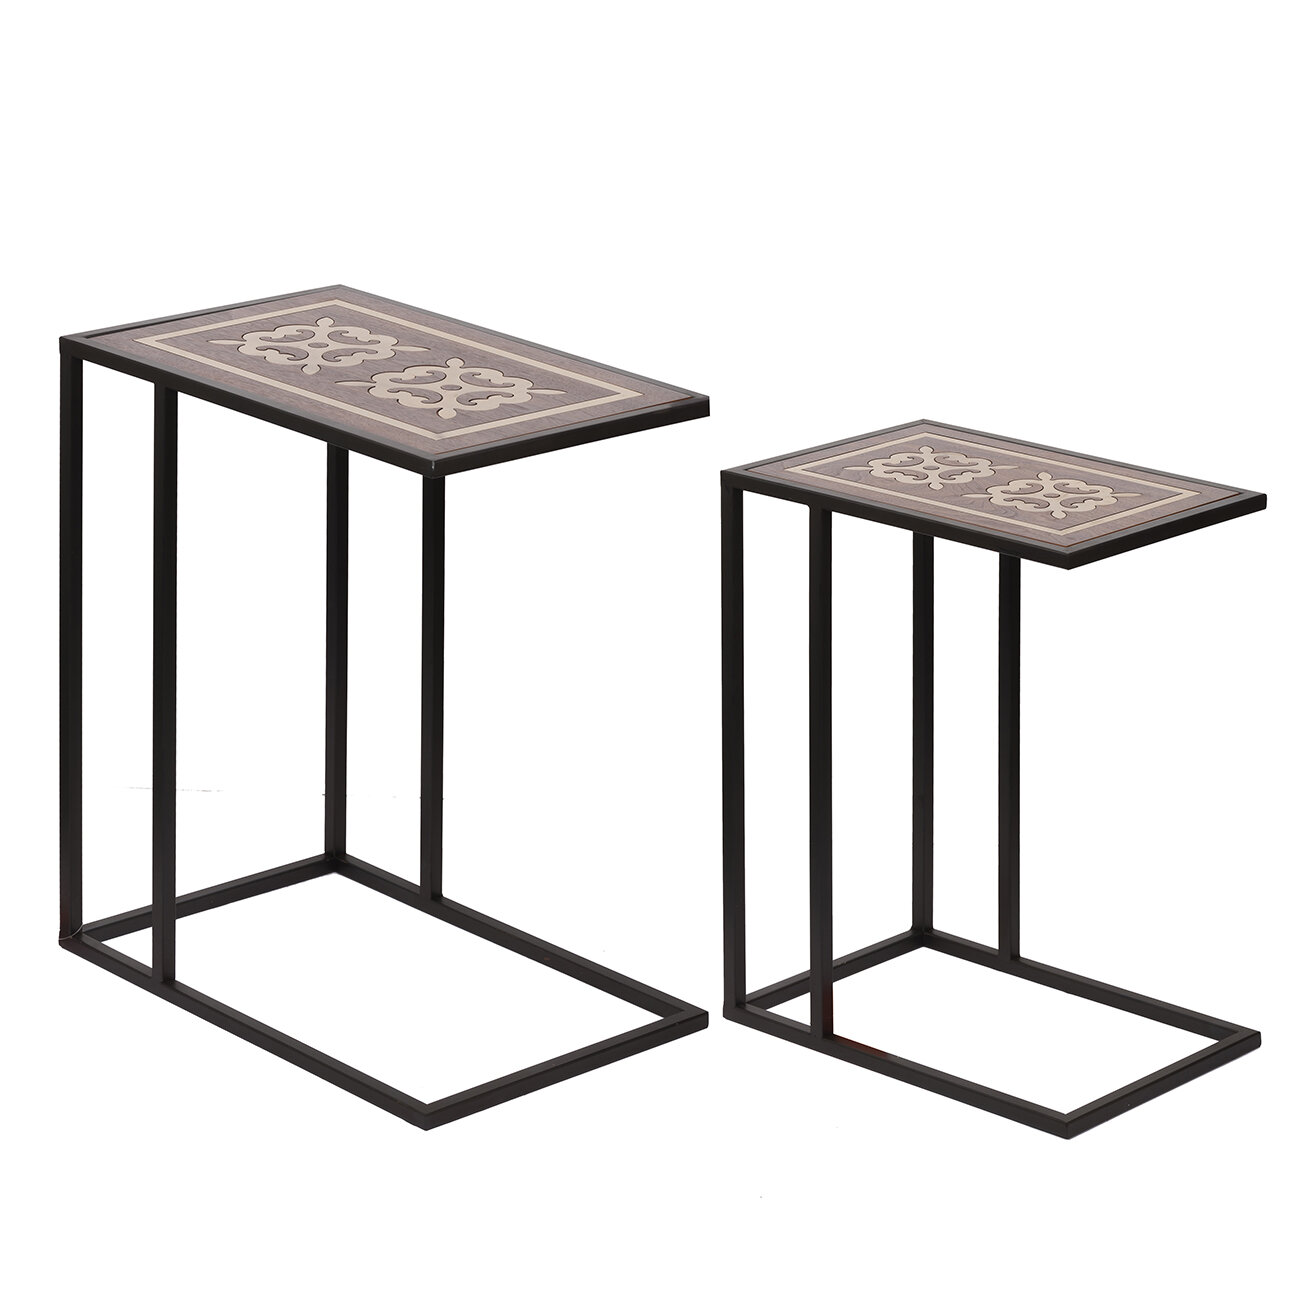 low priced b6232 bf18a Details about Bloomsbury Market Mcgoldrick Raj Brass Inlaid 2 Piece Nesting  Tables